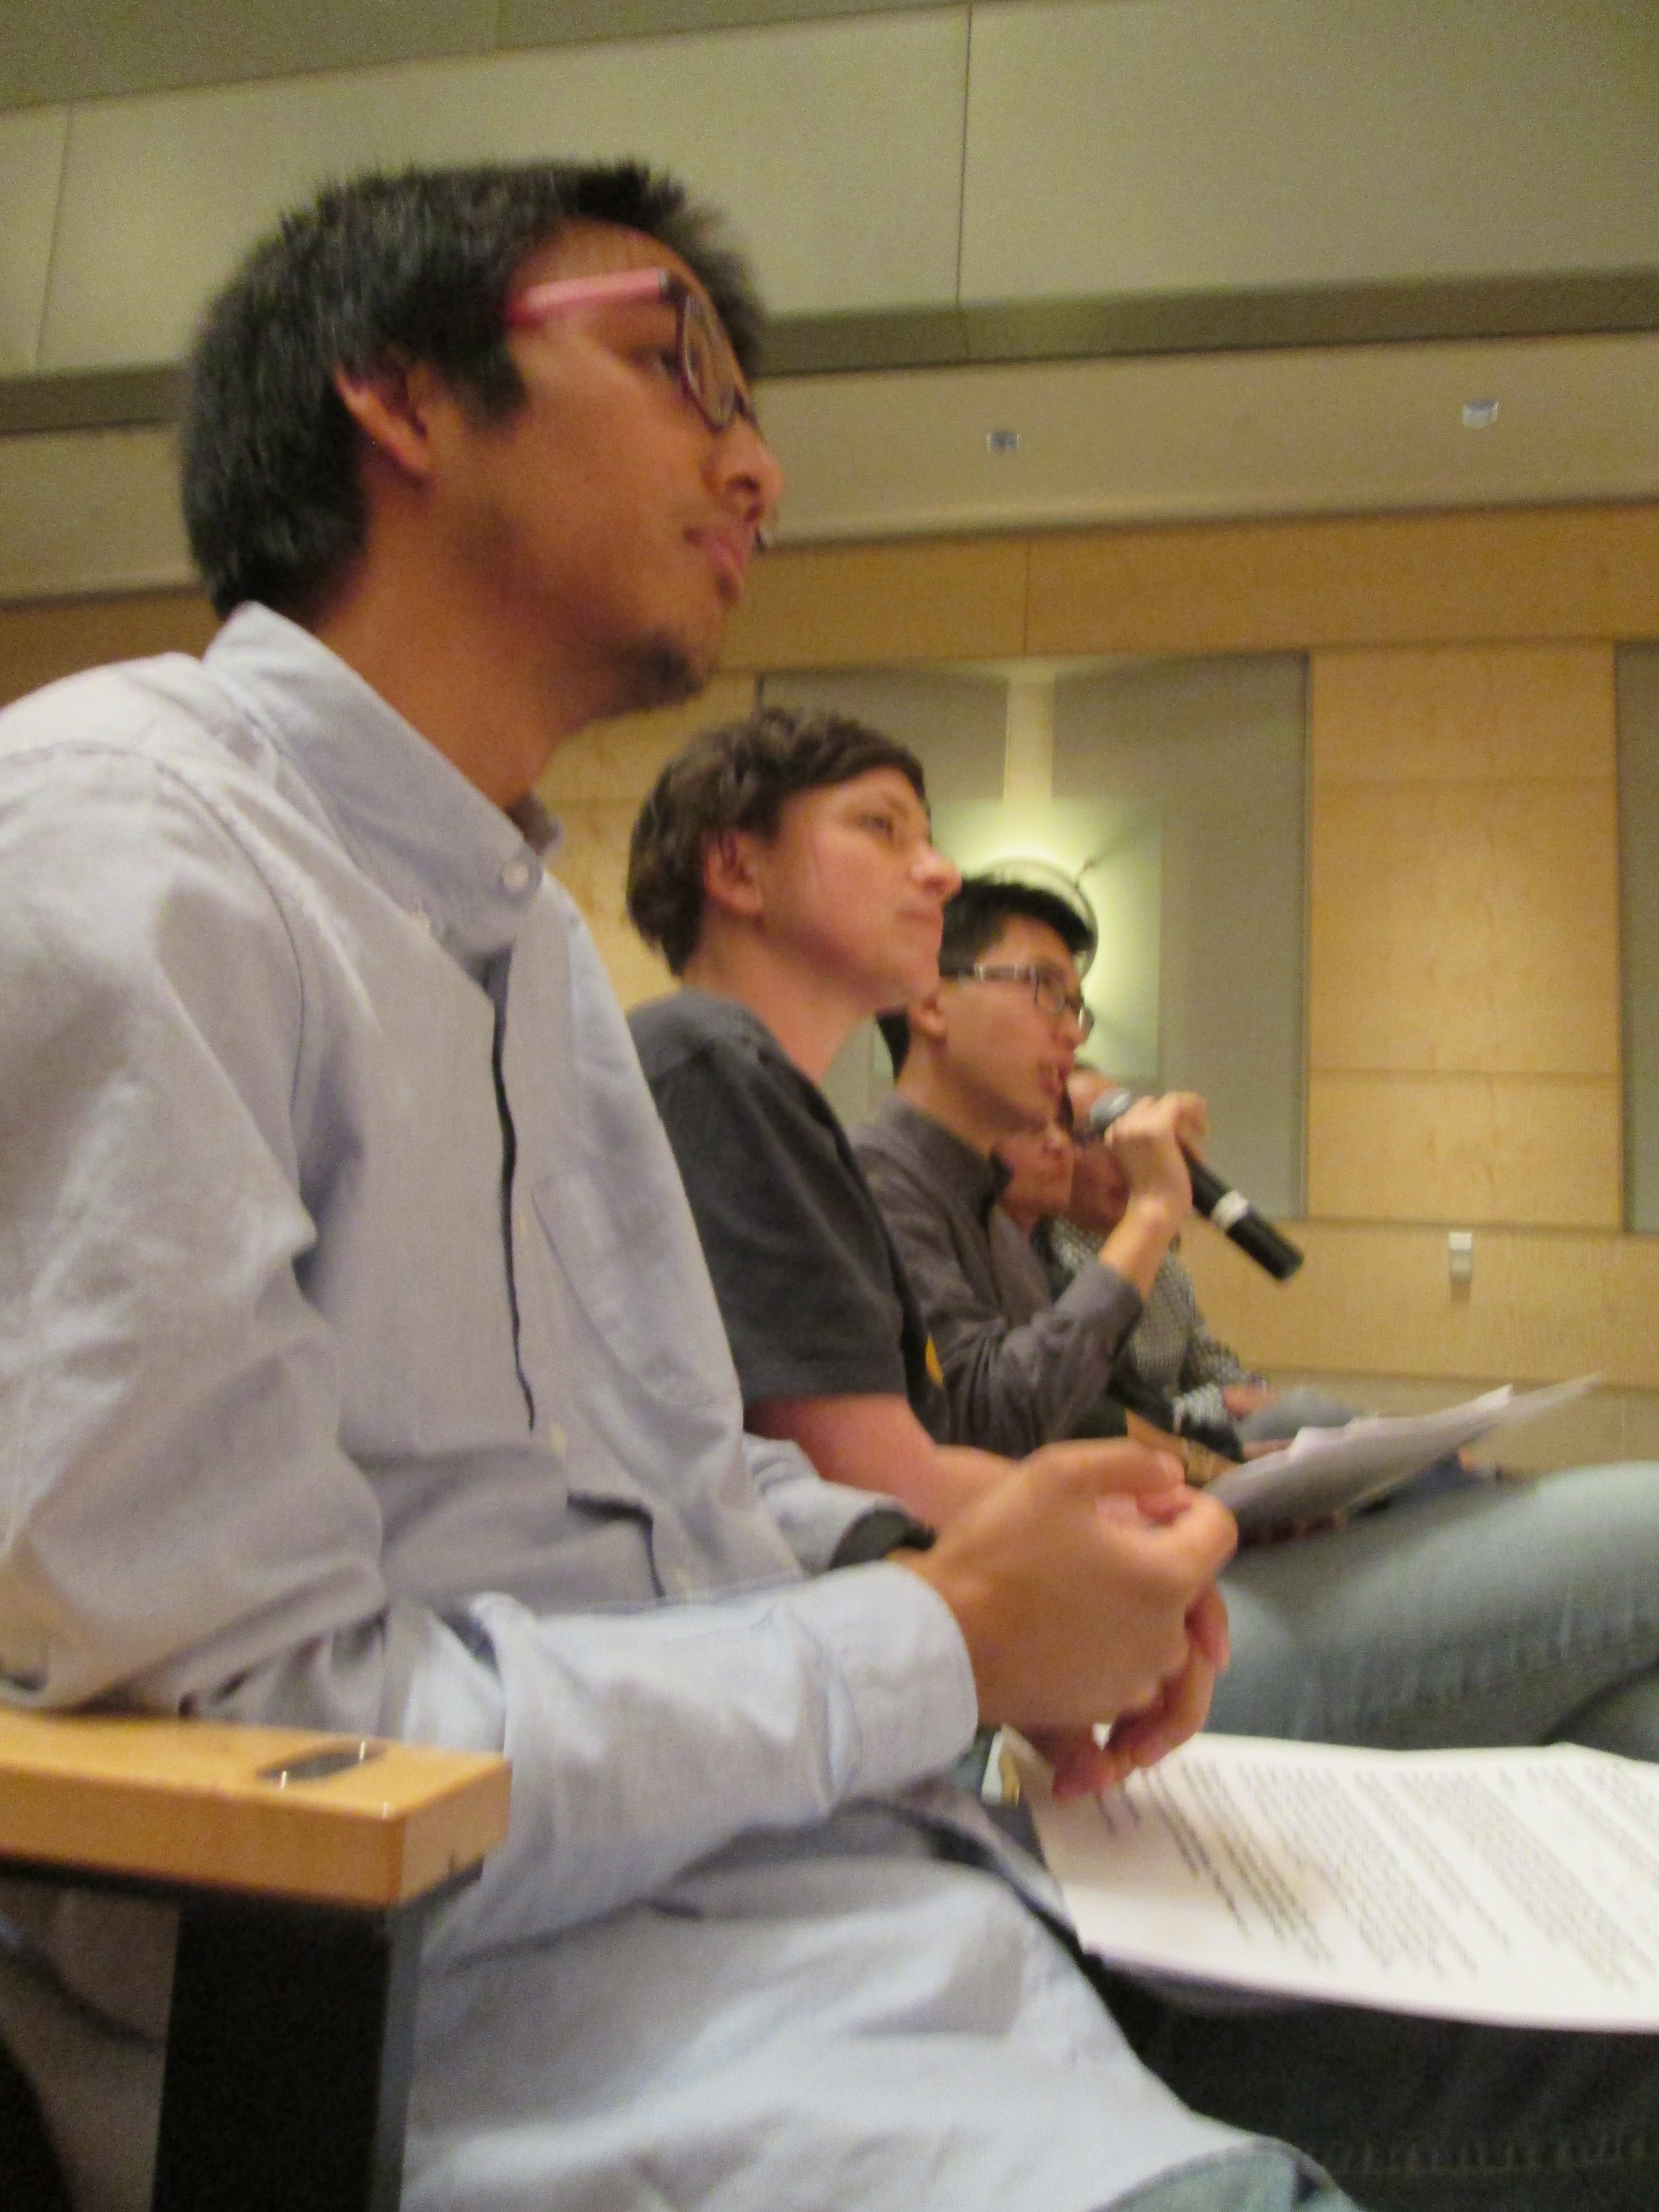 Final Pitch Judges Q&A: Marc Robert Wong (Stanford, TeenTechSF), Mary Abler (The Mix), Austin Tsang (UC Berkeley)